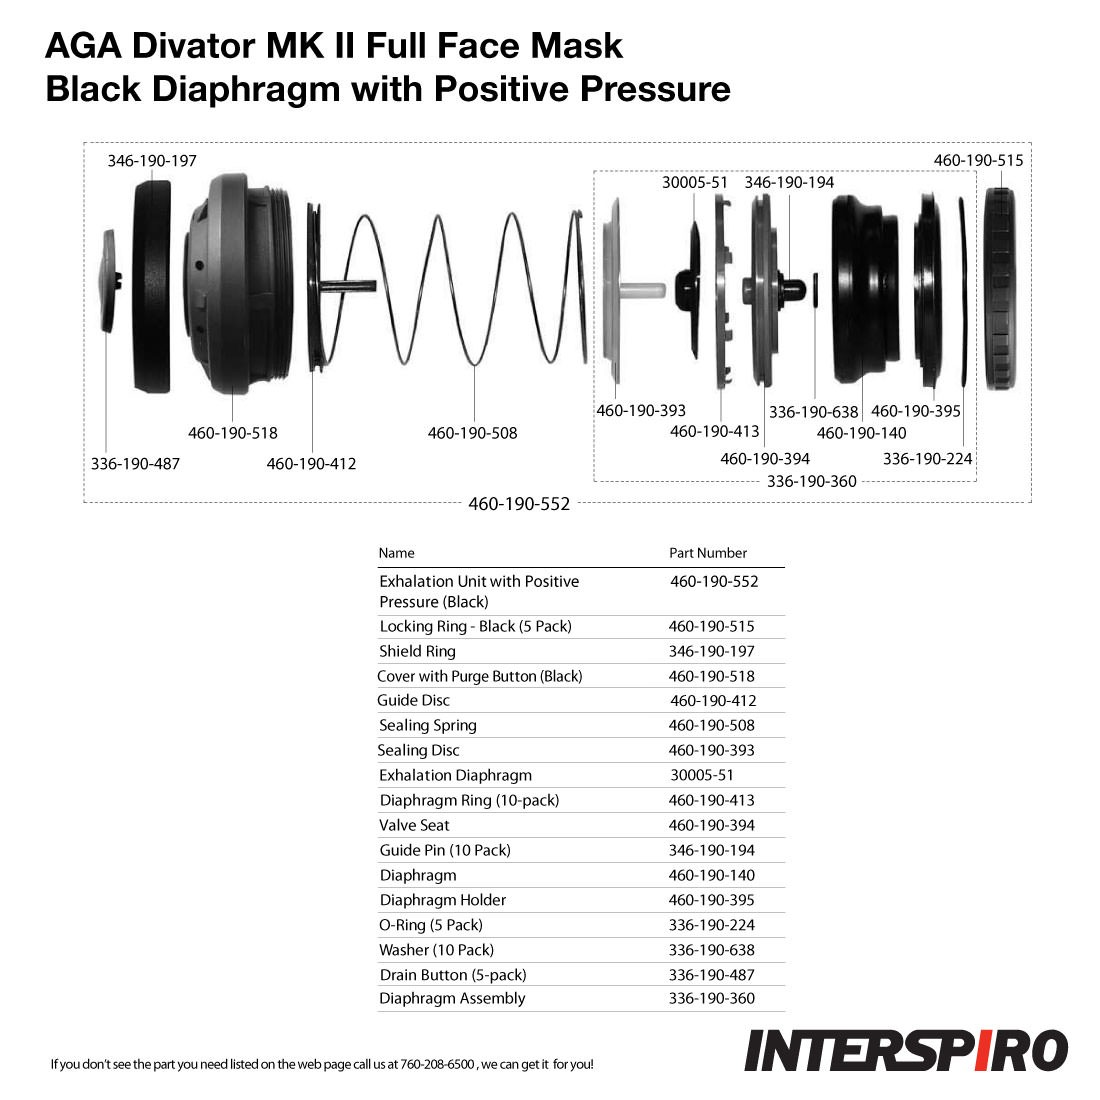 Interspiro AGA Divator MK II Full Face Mask with Positive Pressure Regulator - Natural Rubber - Grey - Diaphragm